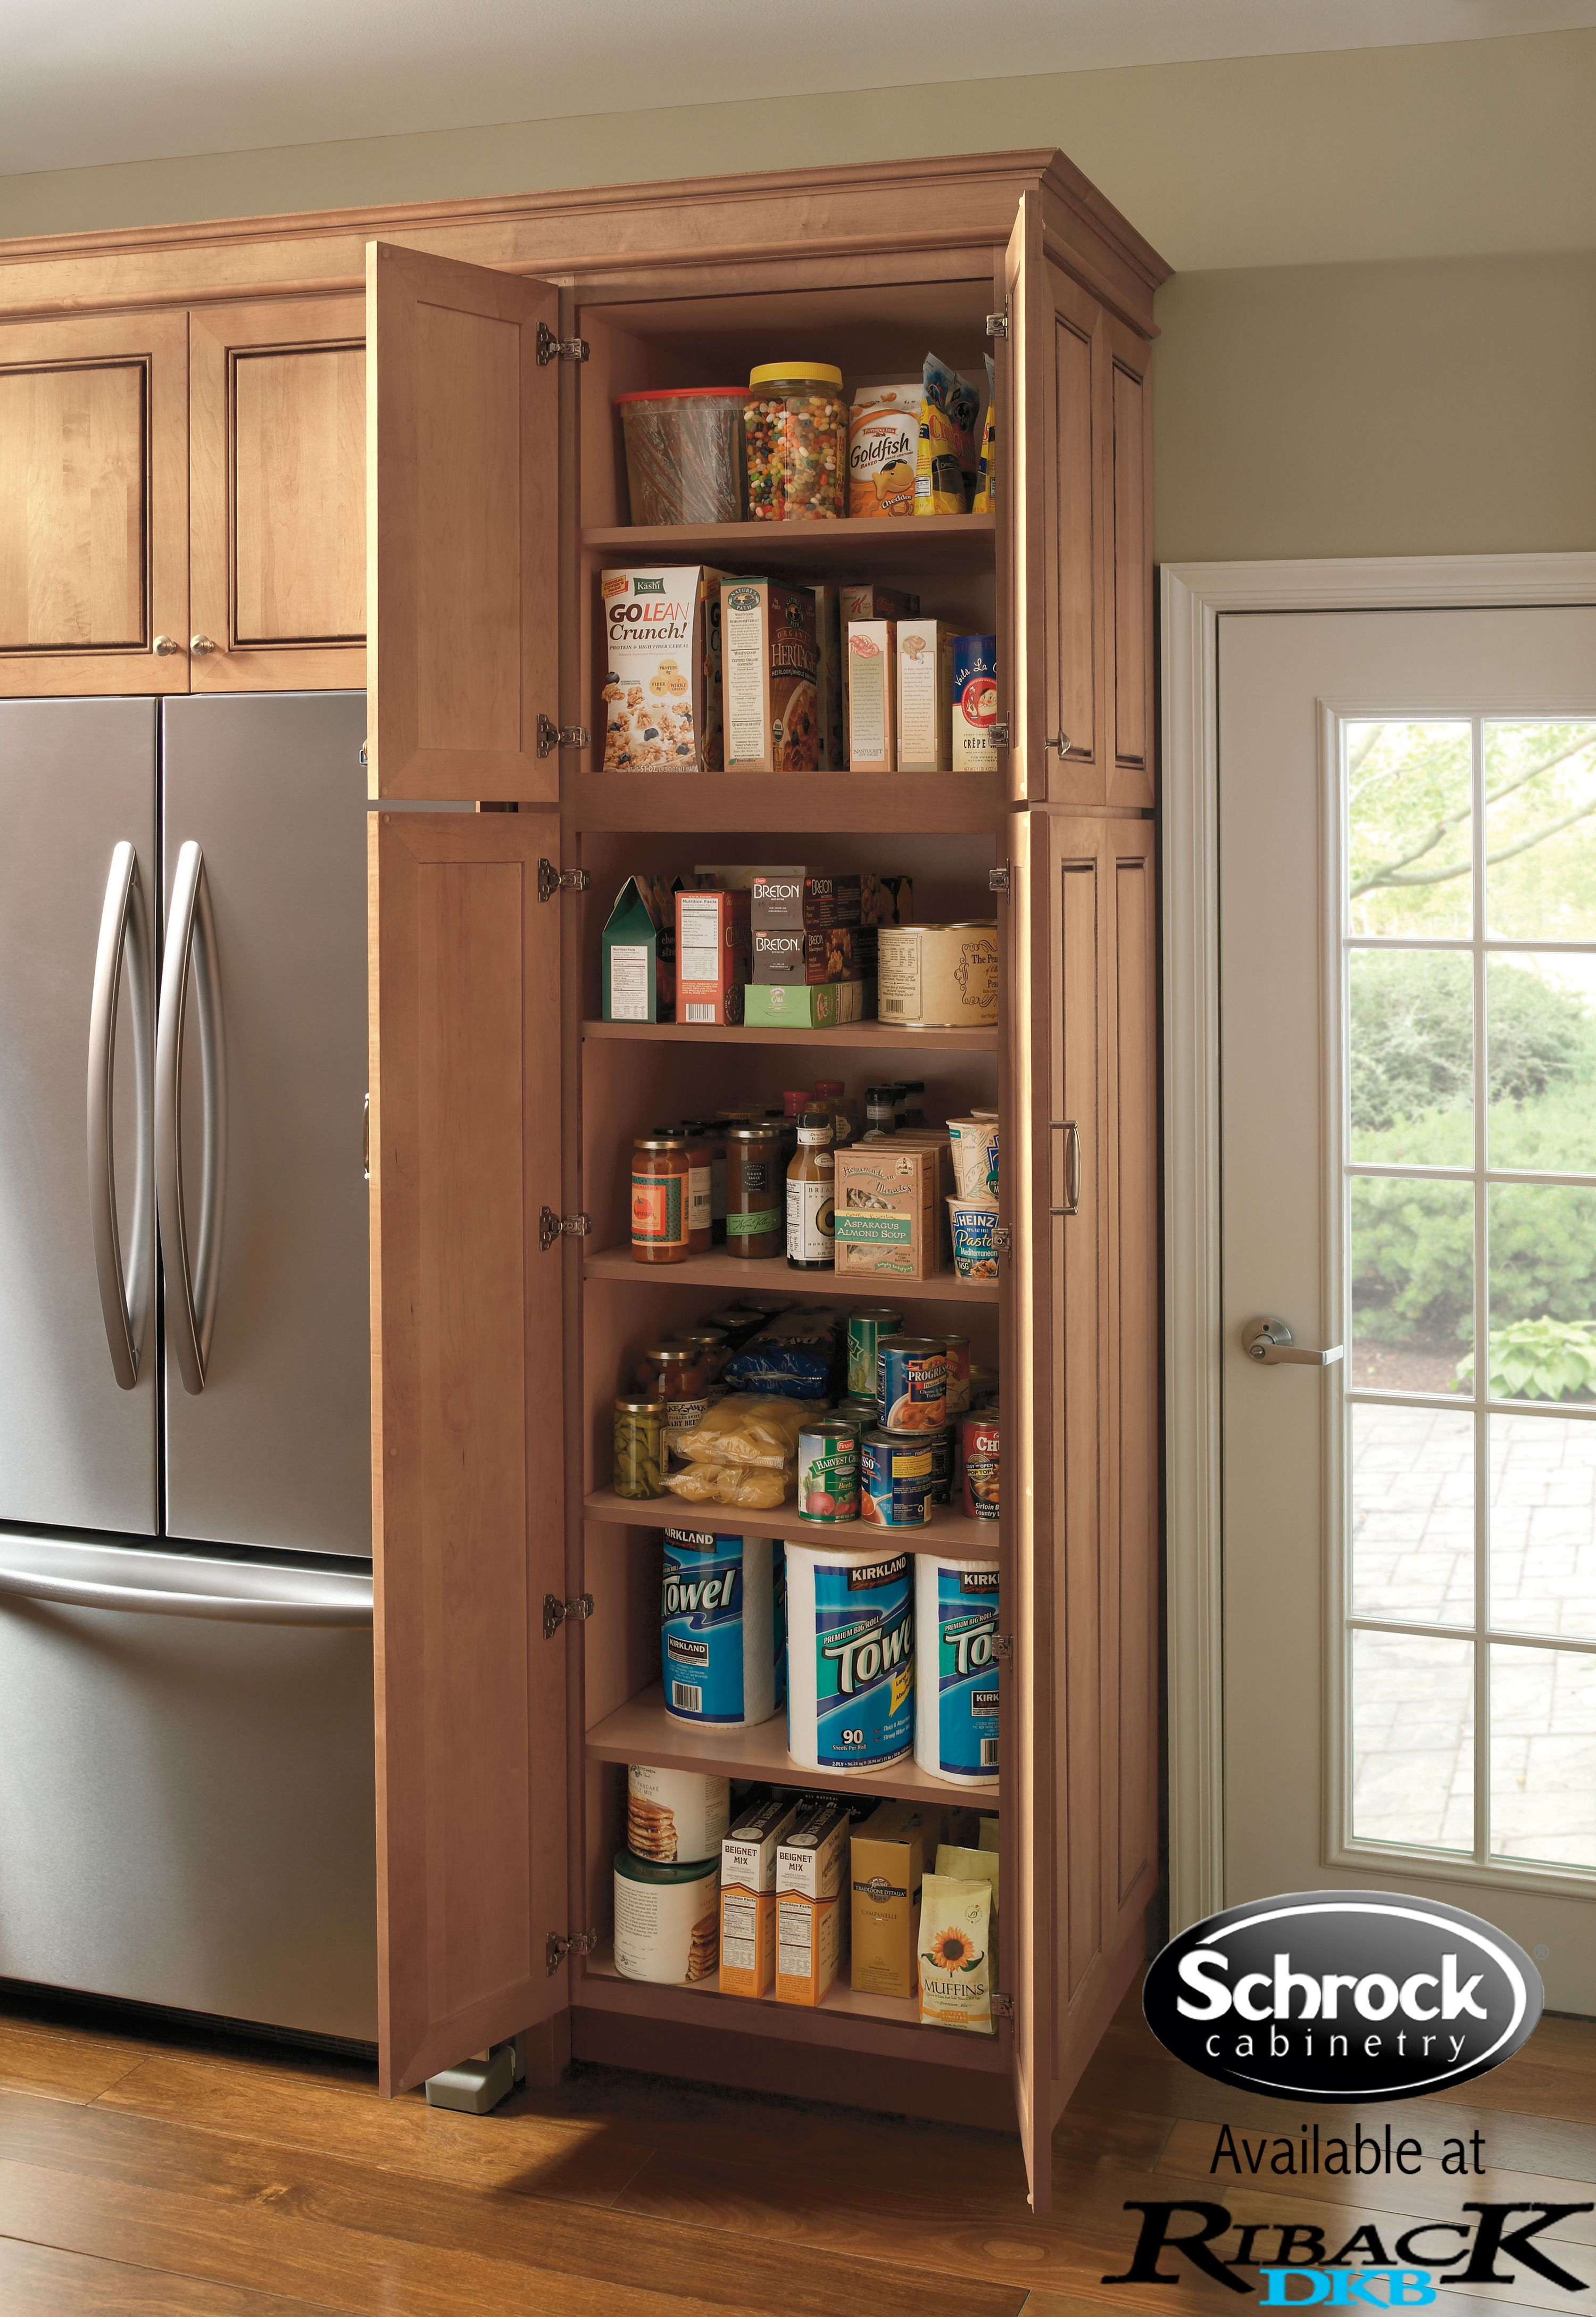 A Clic Vertical Pantry Is Always Good Option For Smaller Kitchen